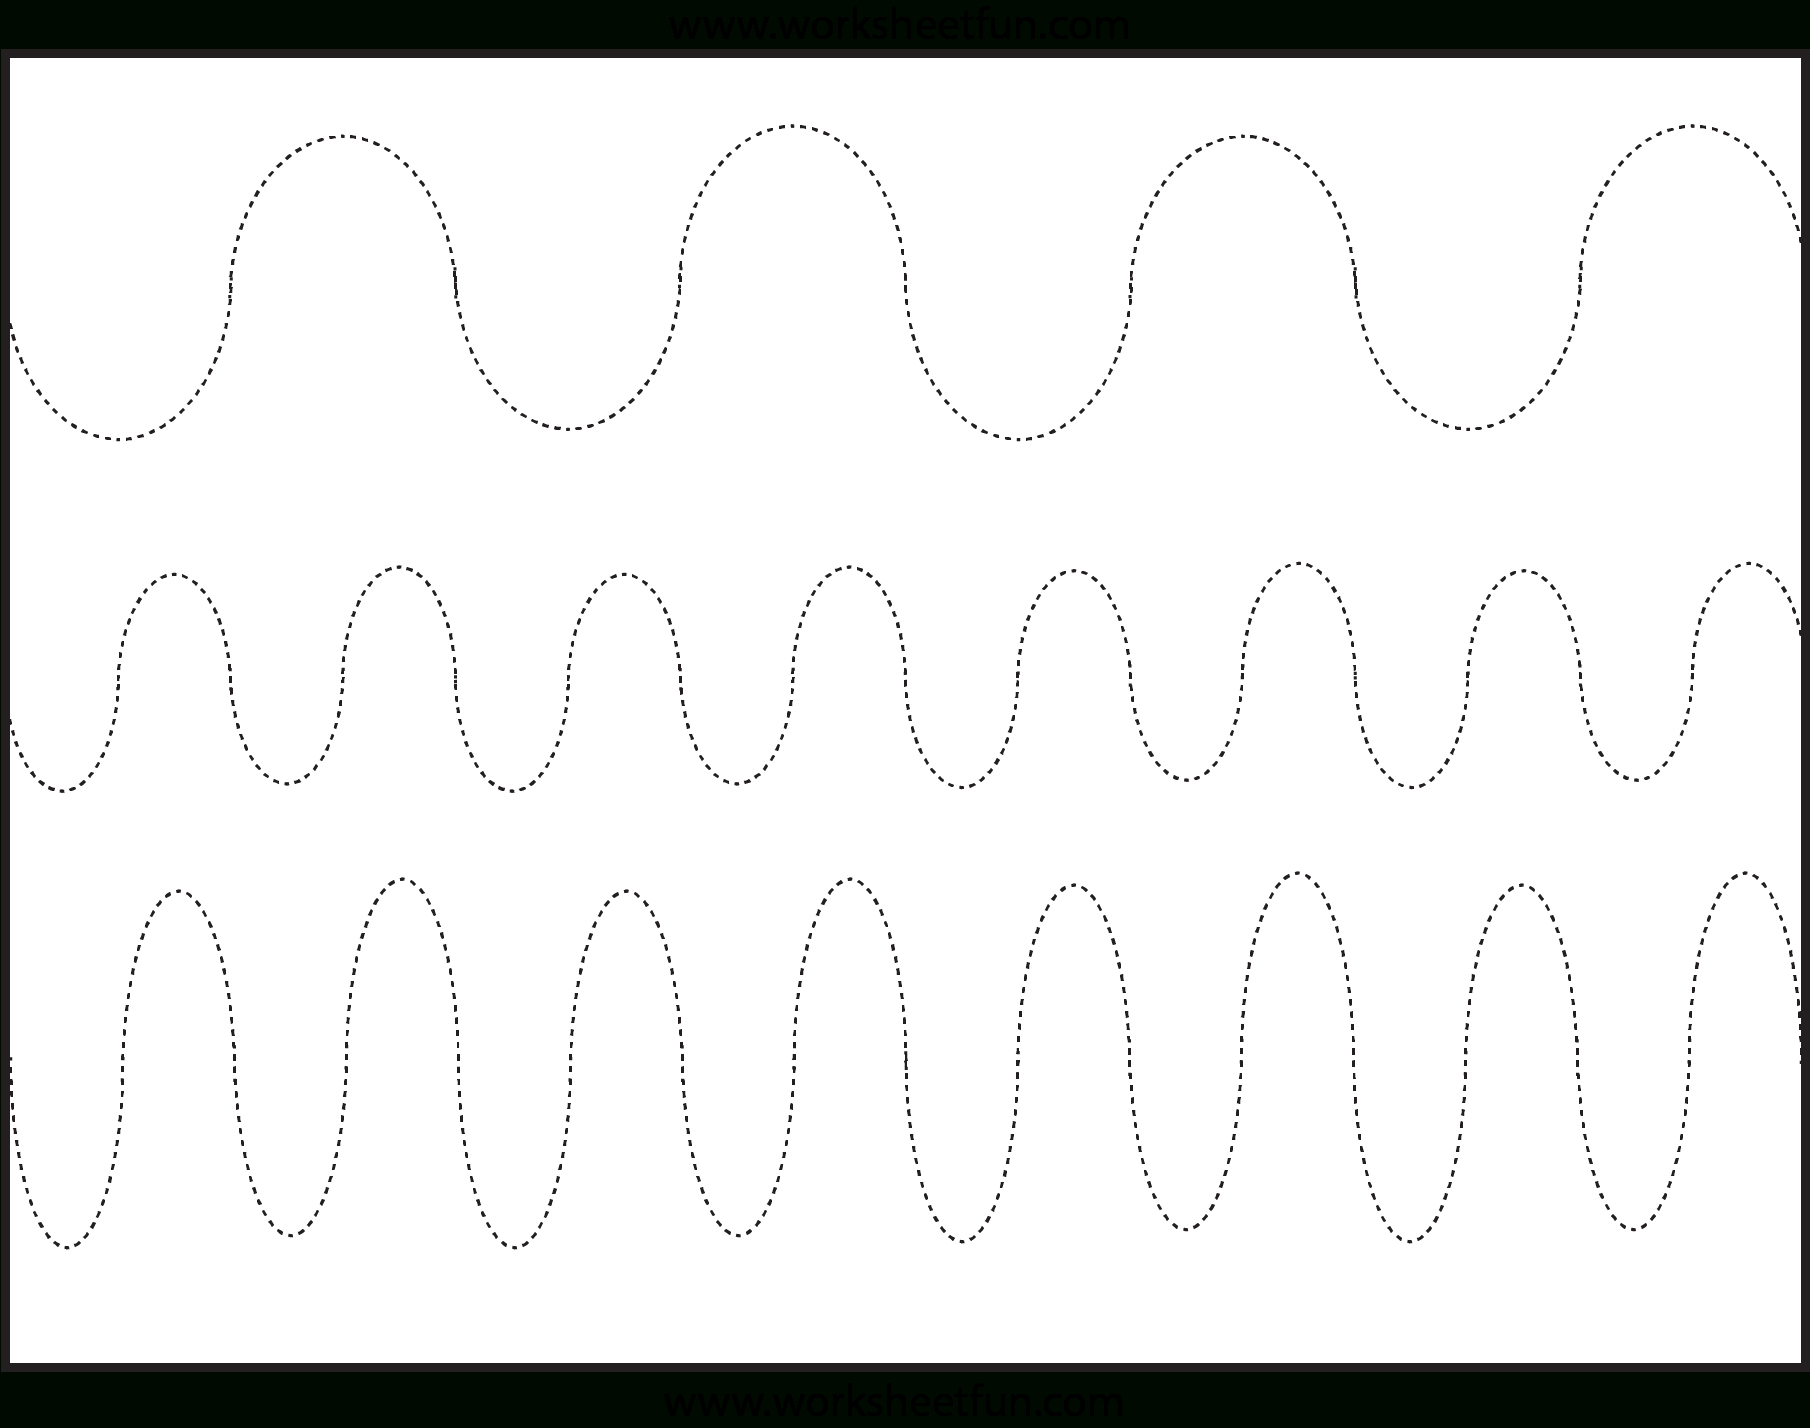 Curved Line Tracing – 3 Worksheets / Free Printable Worksheets | Free Printable Preschool Worksheets Tracing Lines